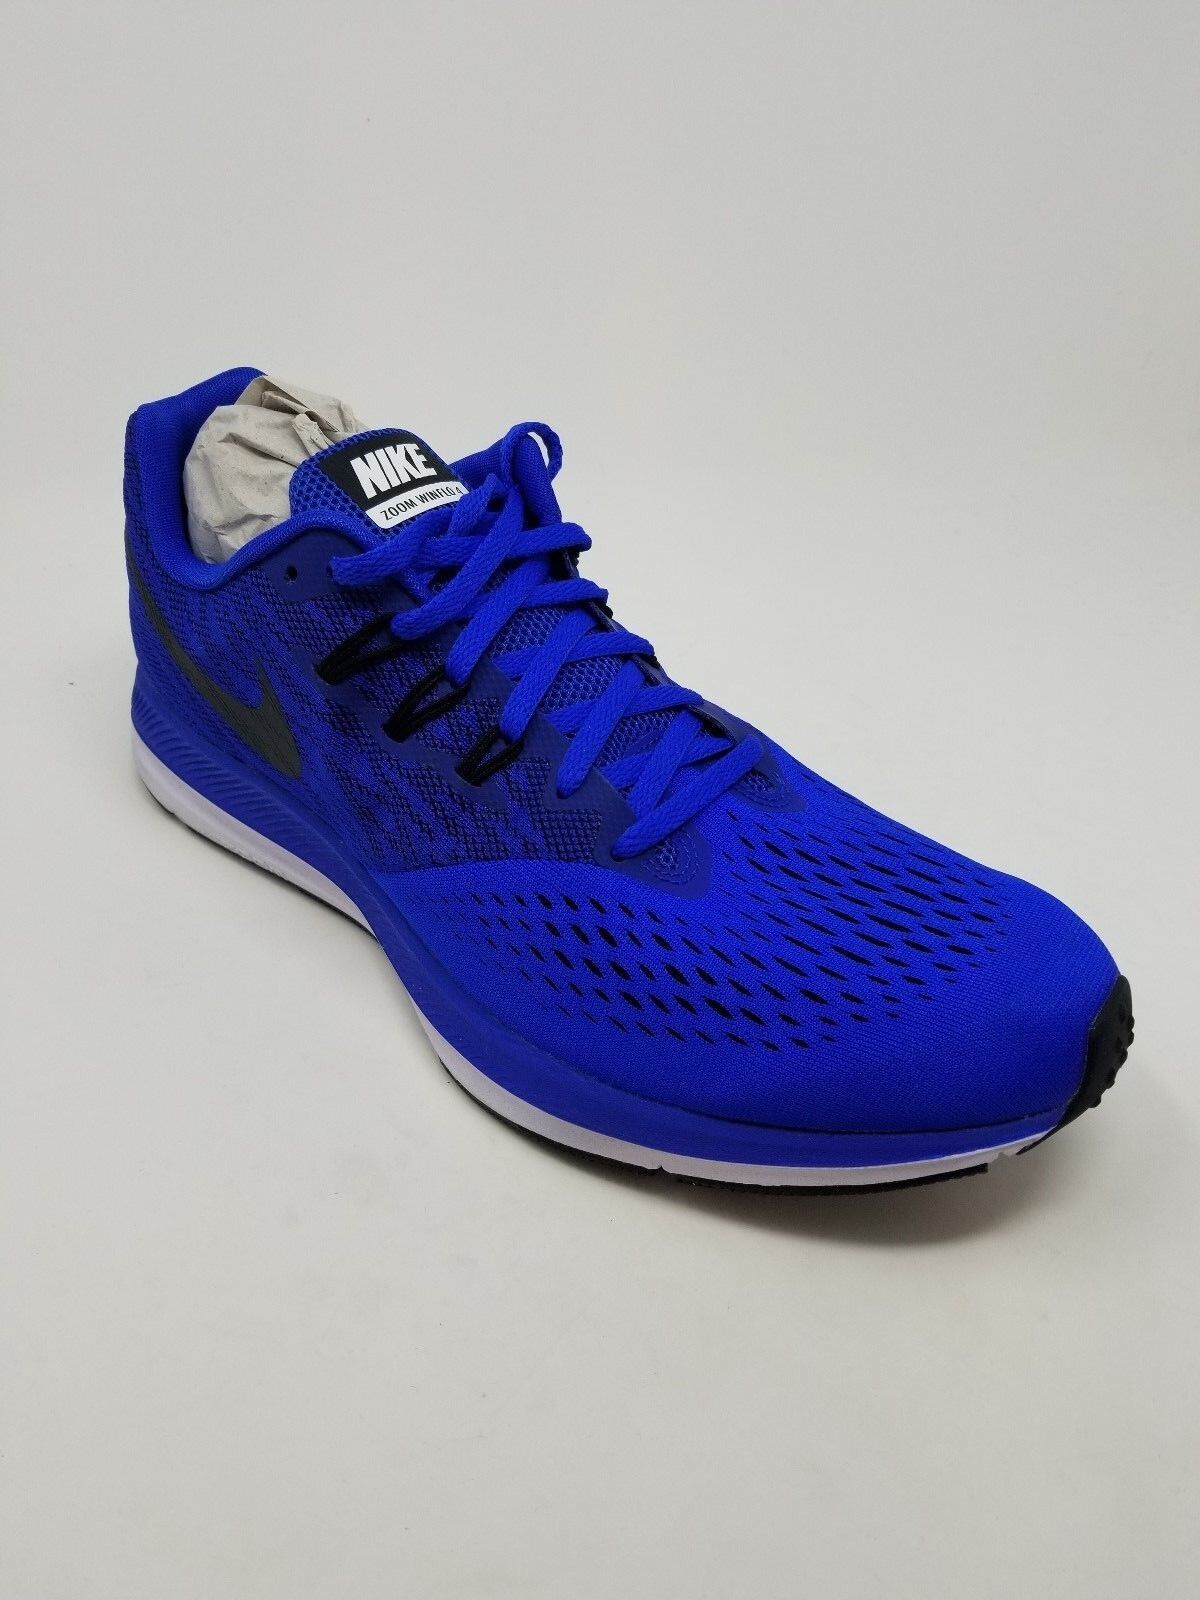 650 Nike Men's Zoom Winflo 4 Running shoes, bluee Size 13 M